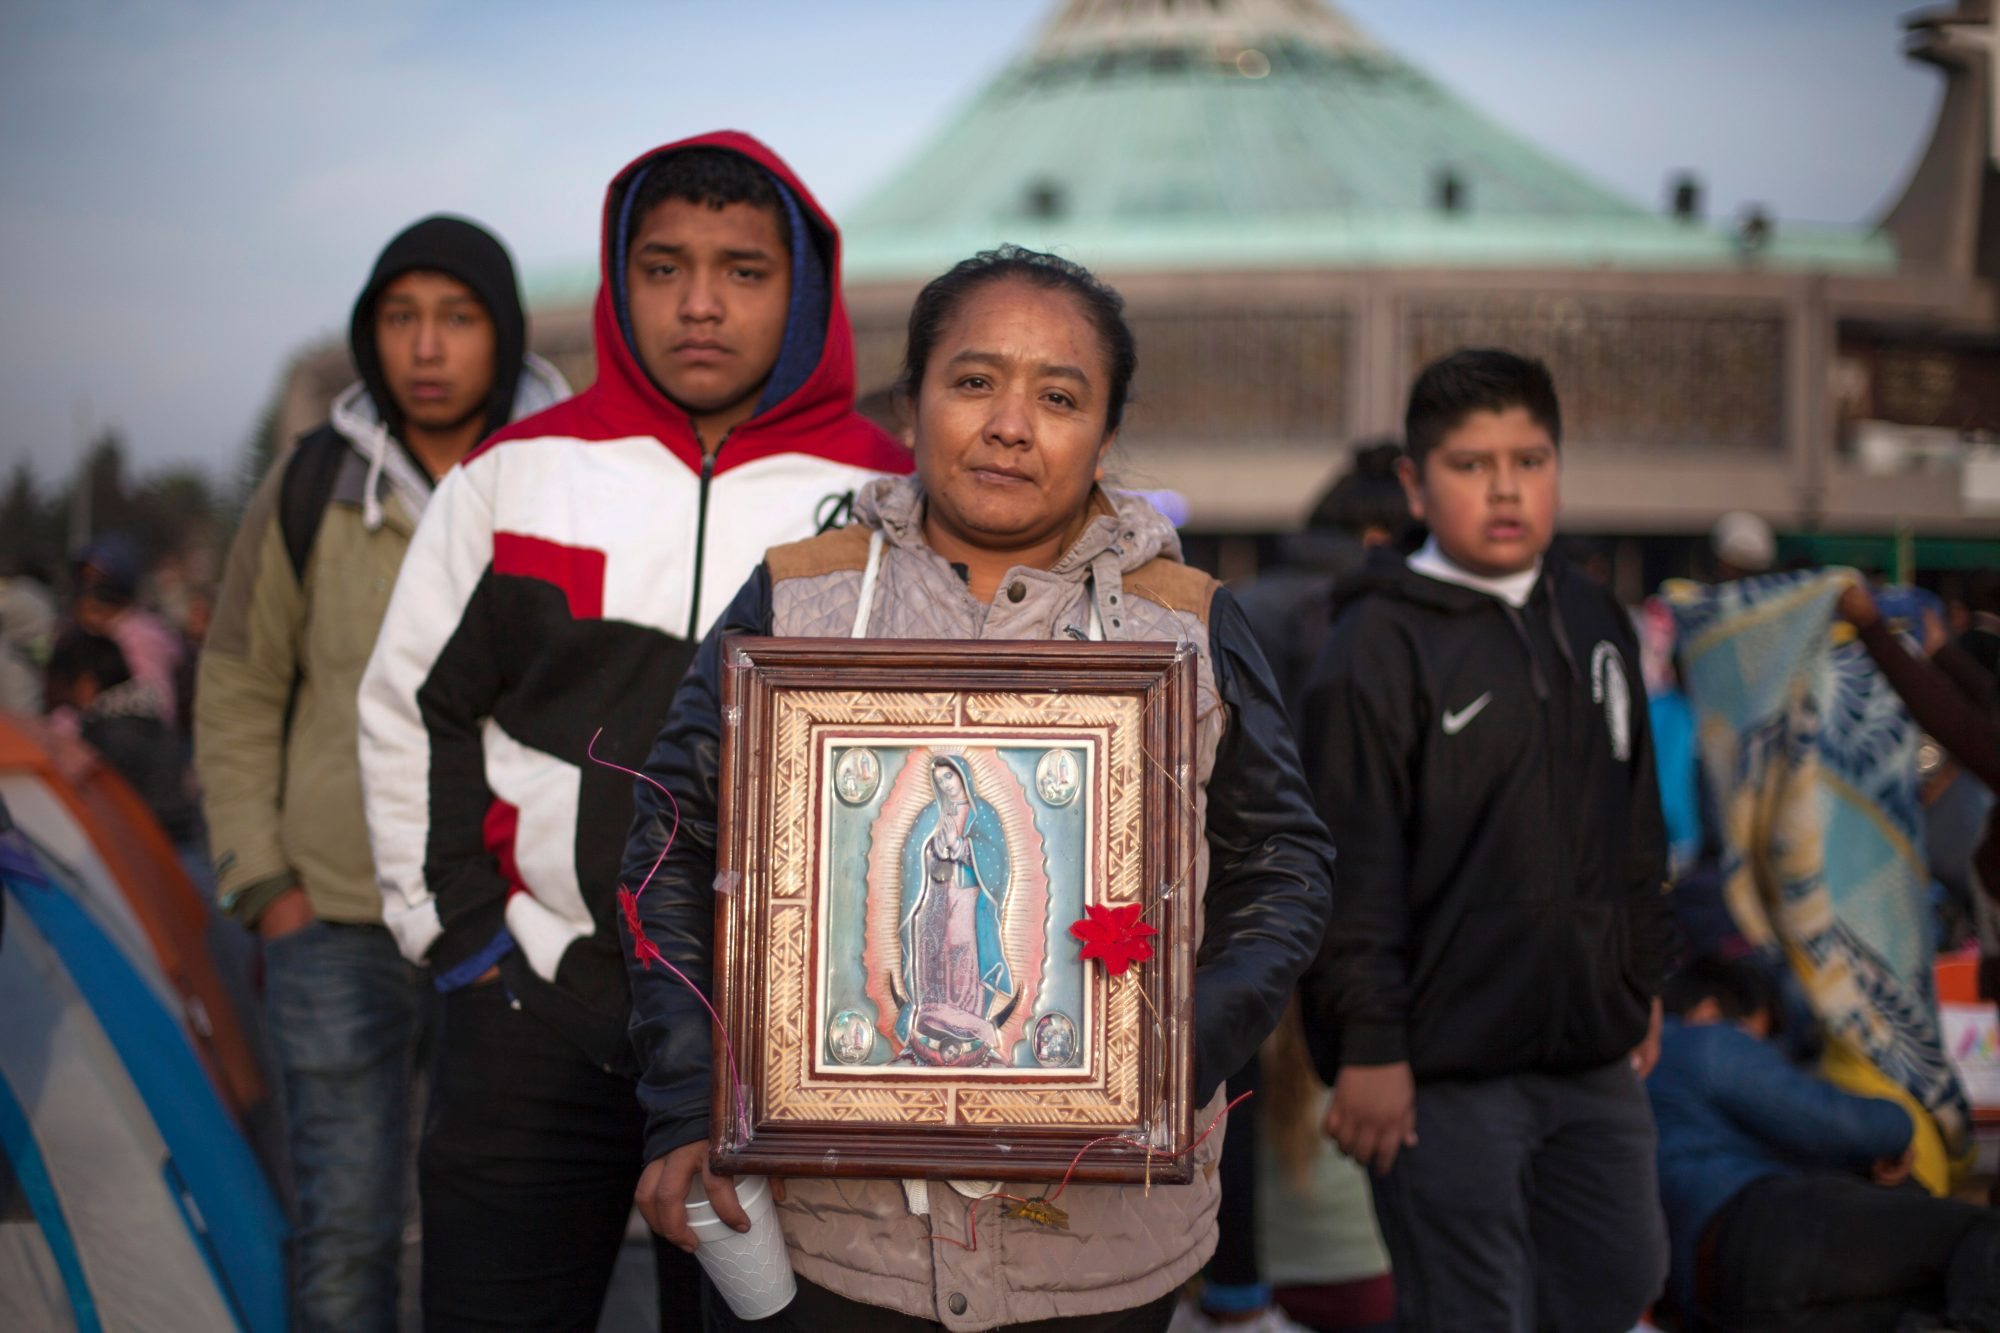 MEXICO-RELIGION-VIRGIN OF GUADALUPE